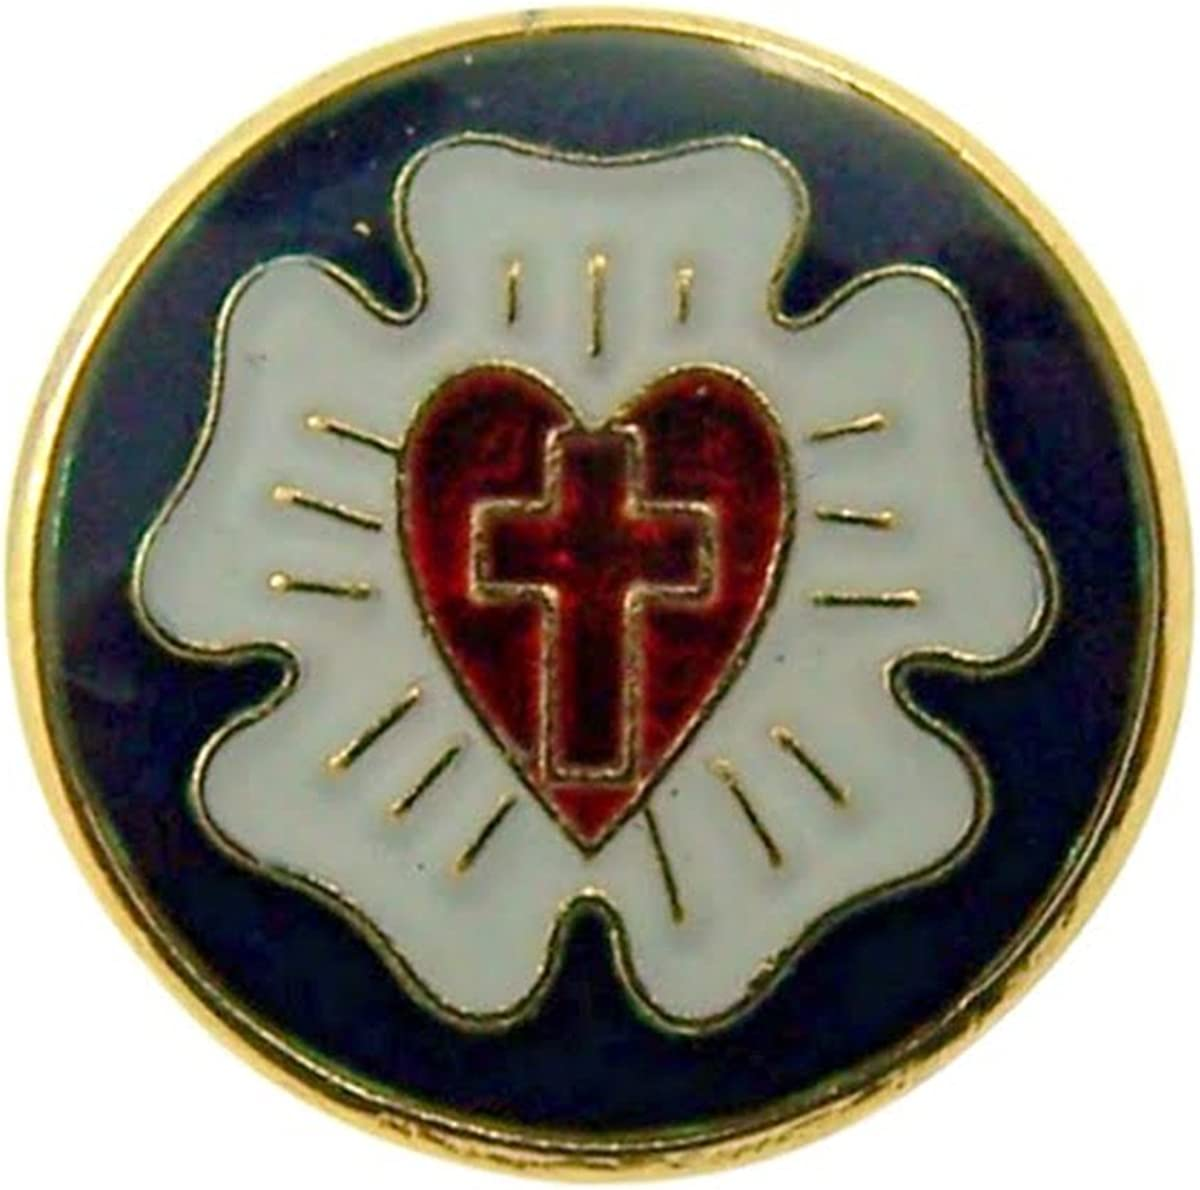 Religious Lapel Pins Gold Tone and Enamel Lutherian Shield, 1/2 Inch